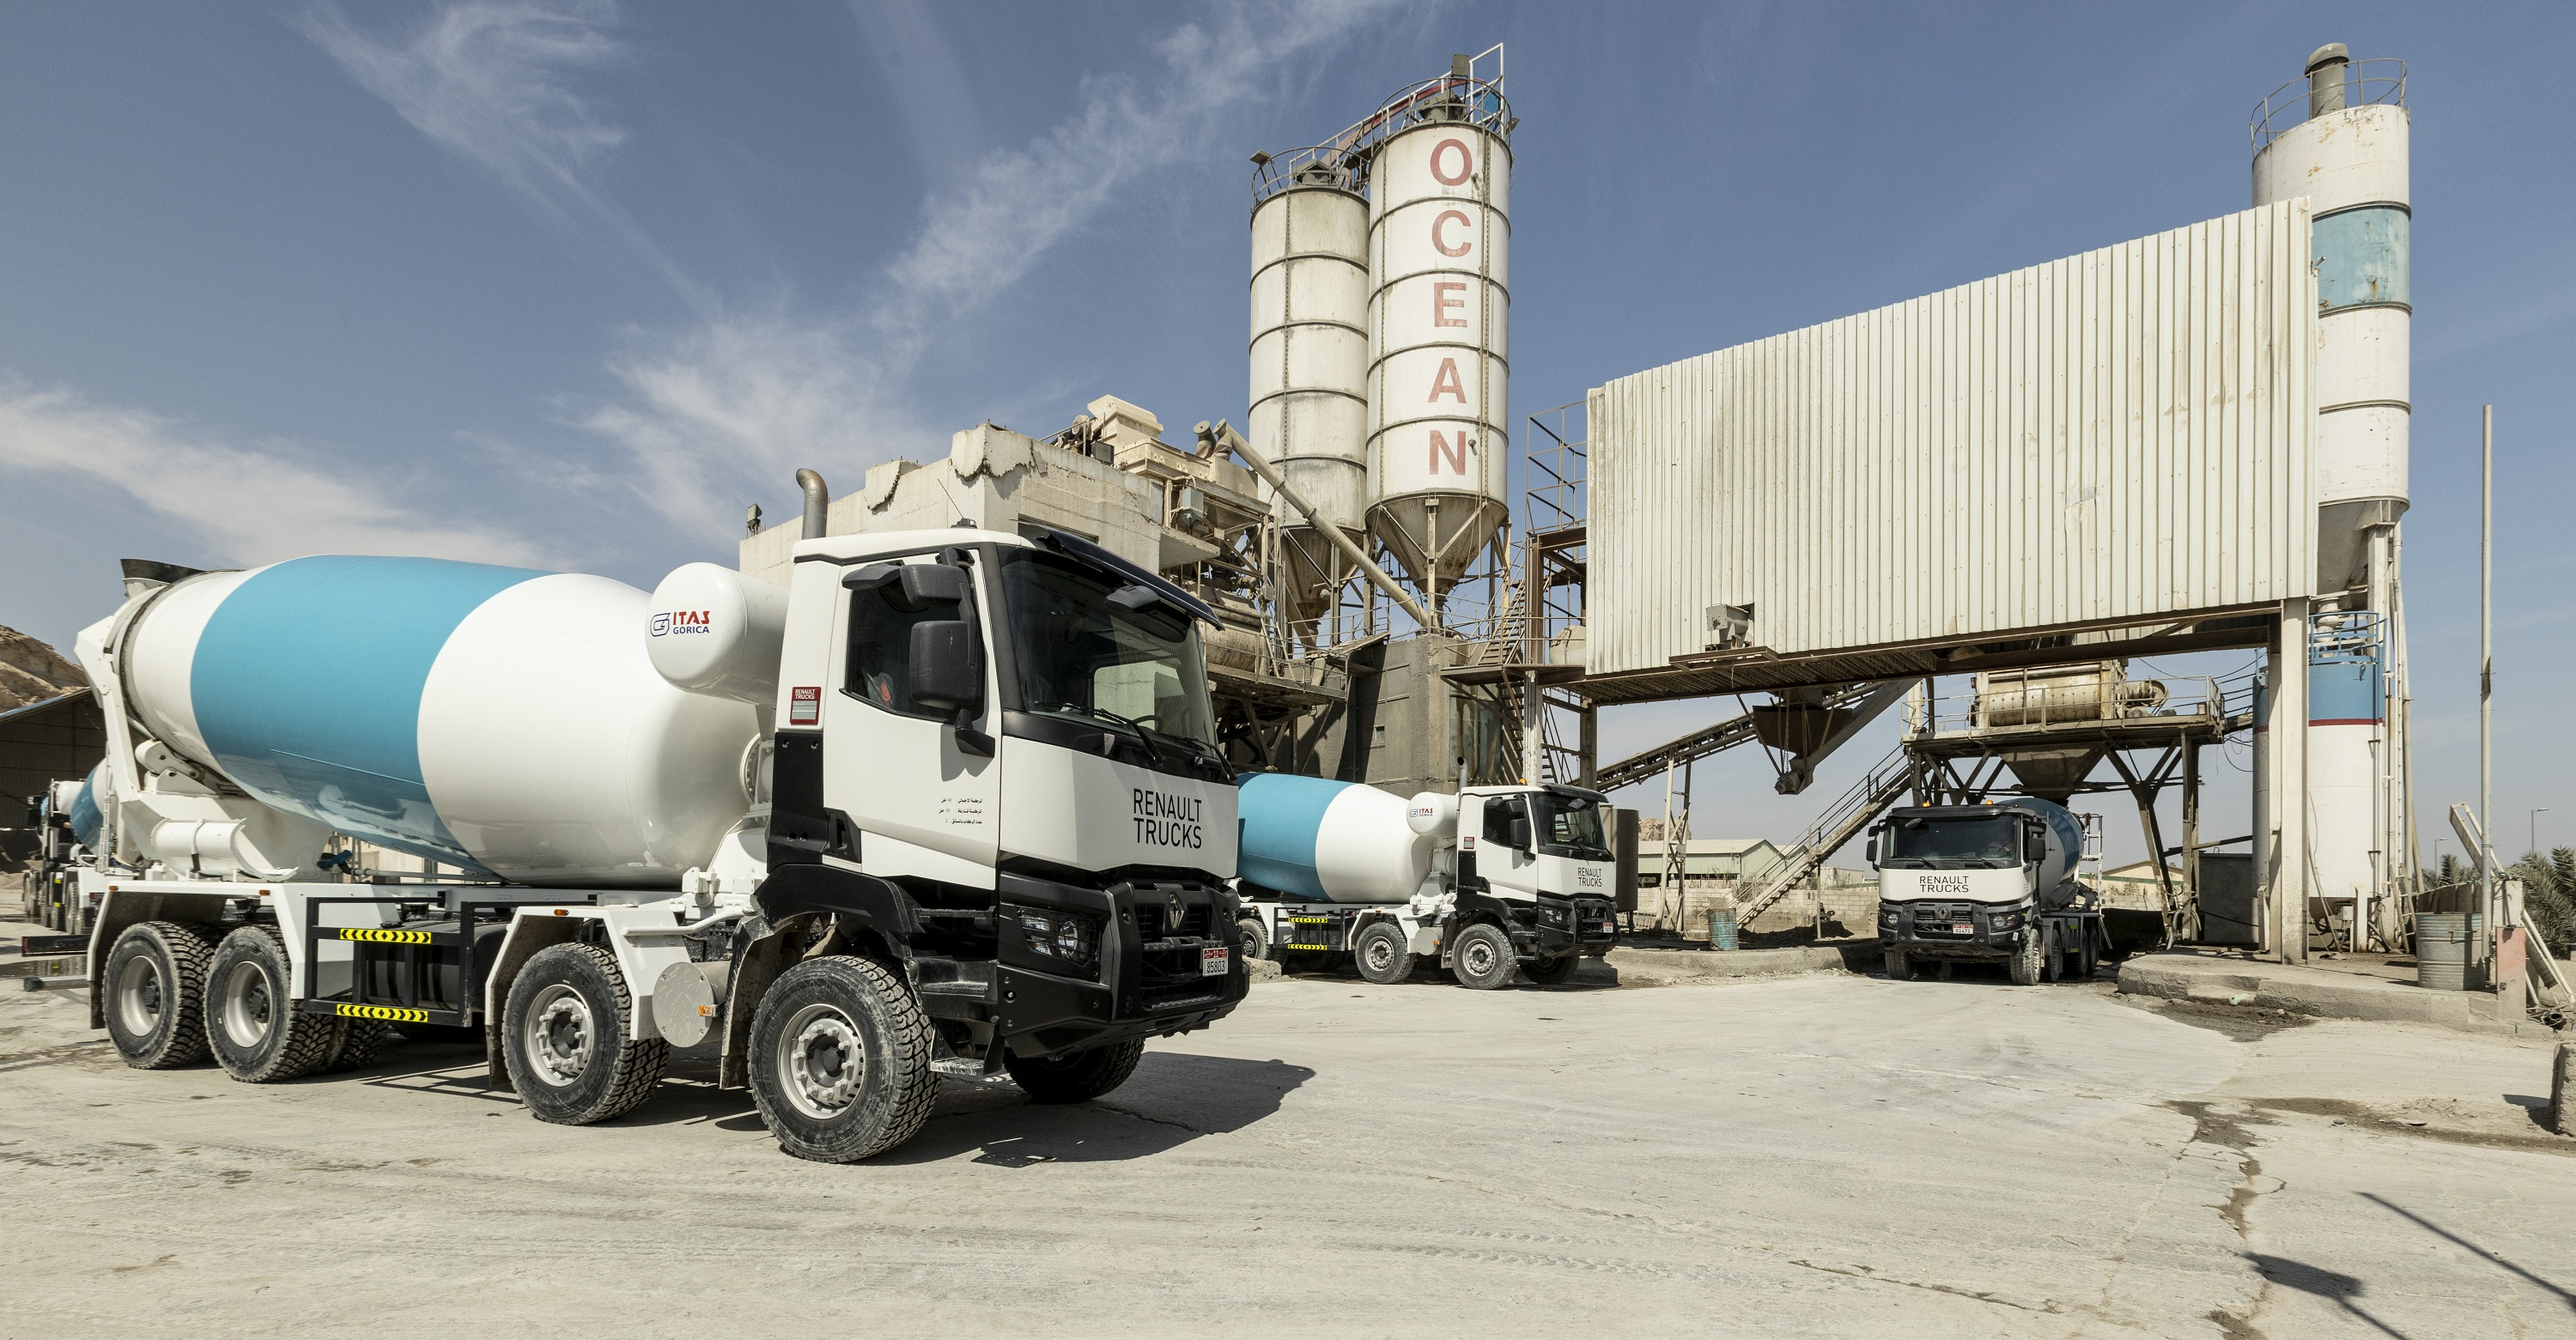 Al Masaood Commercial Vehicles & Equipment Enters into New Transit Mixer Deal with Ocean Readymix & Precast